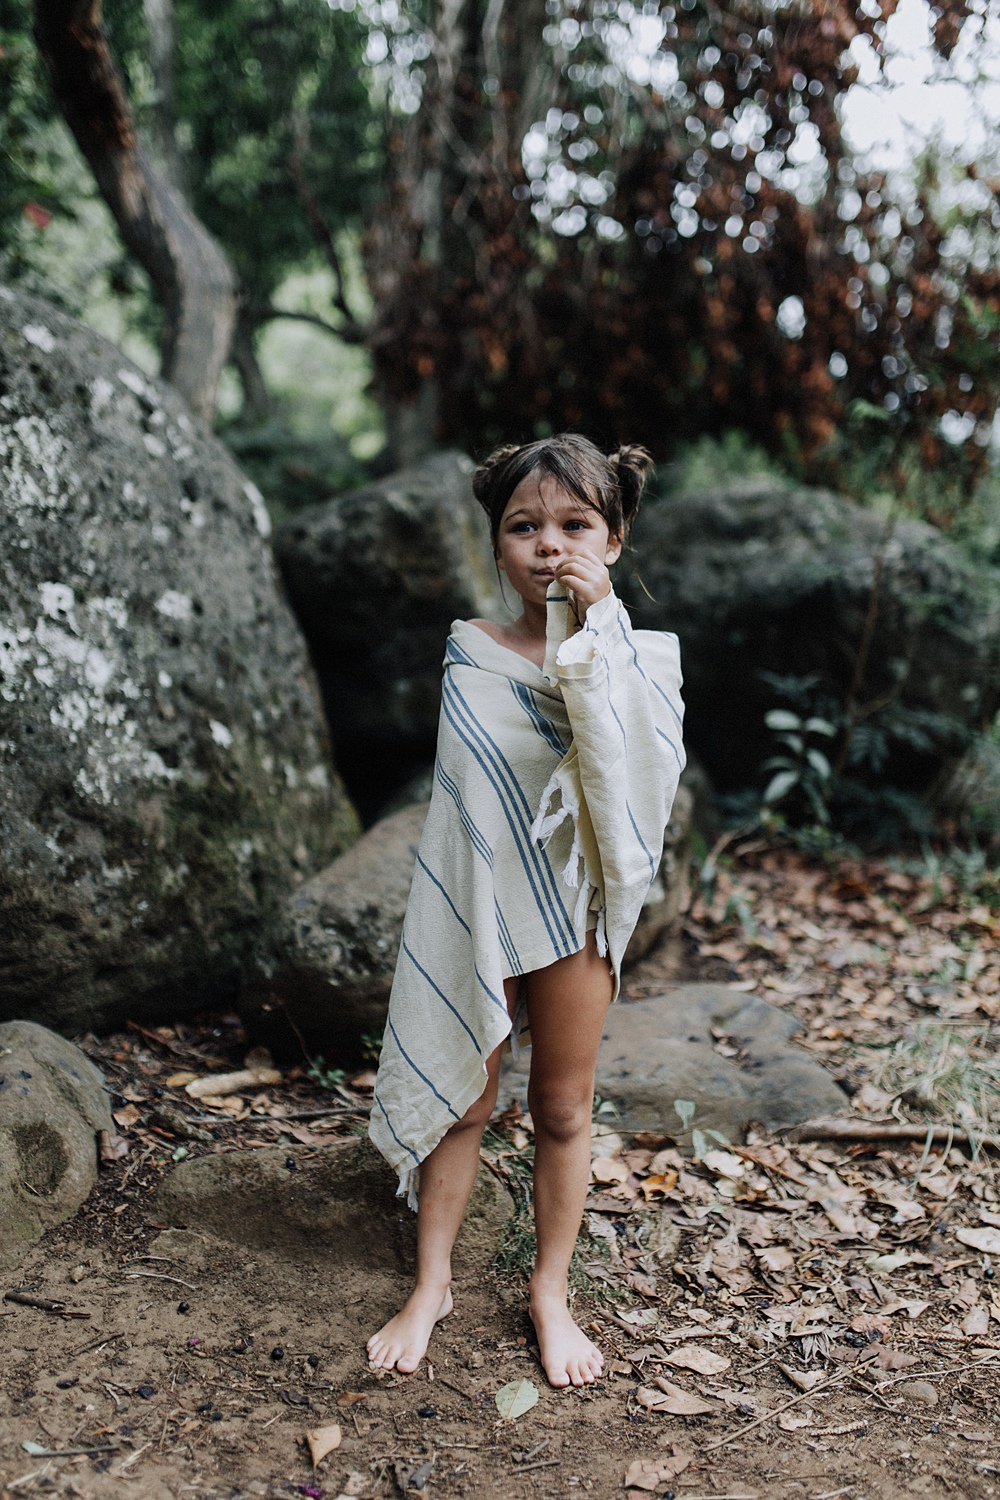 maui photographer visits iao valley in maui, hawaii for family photography.